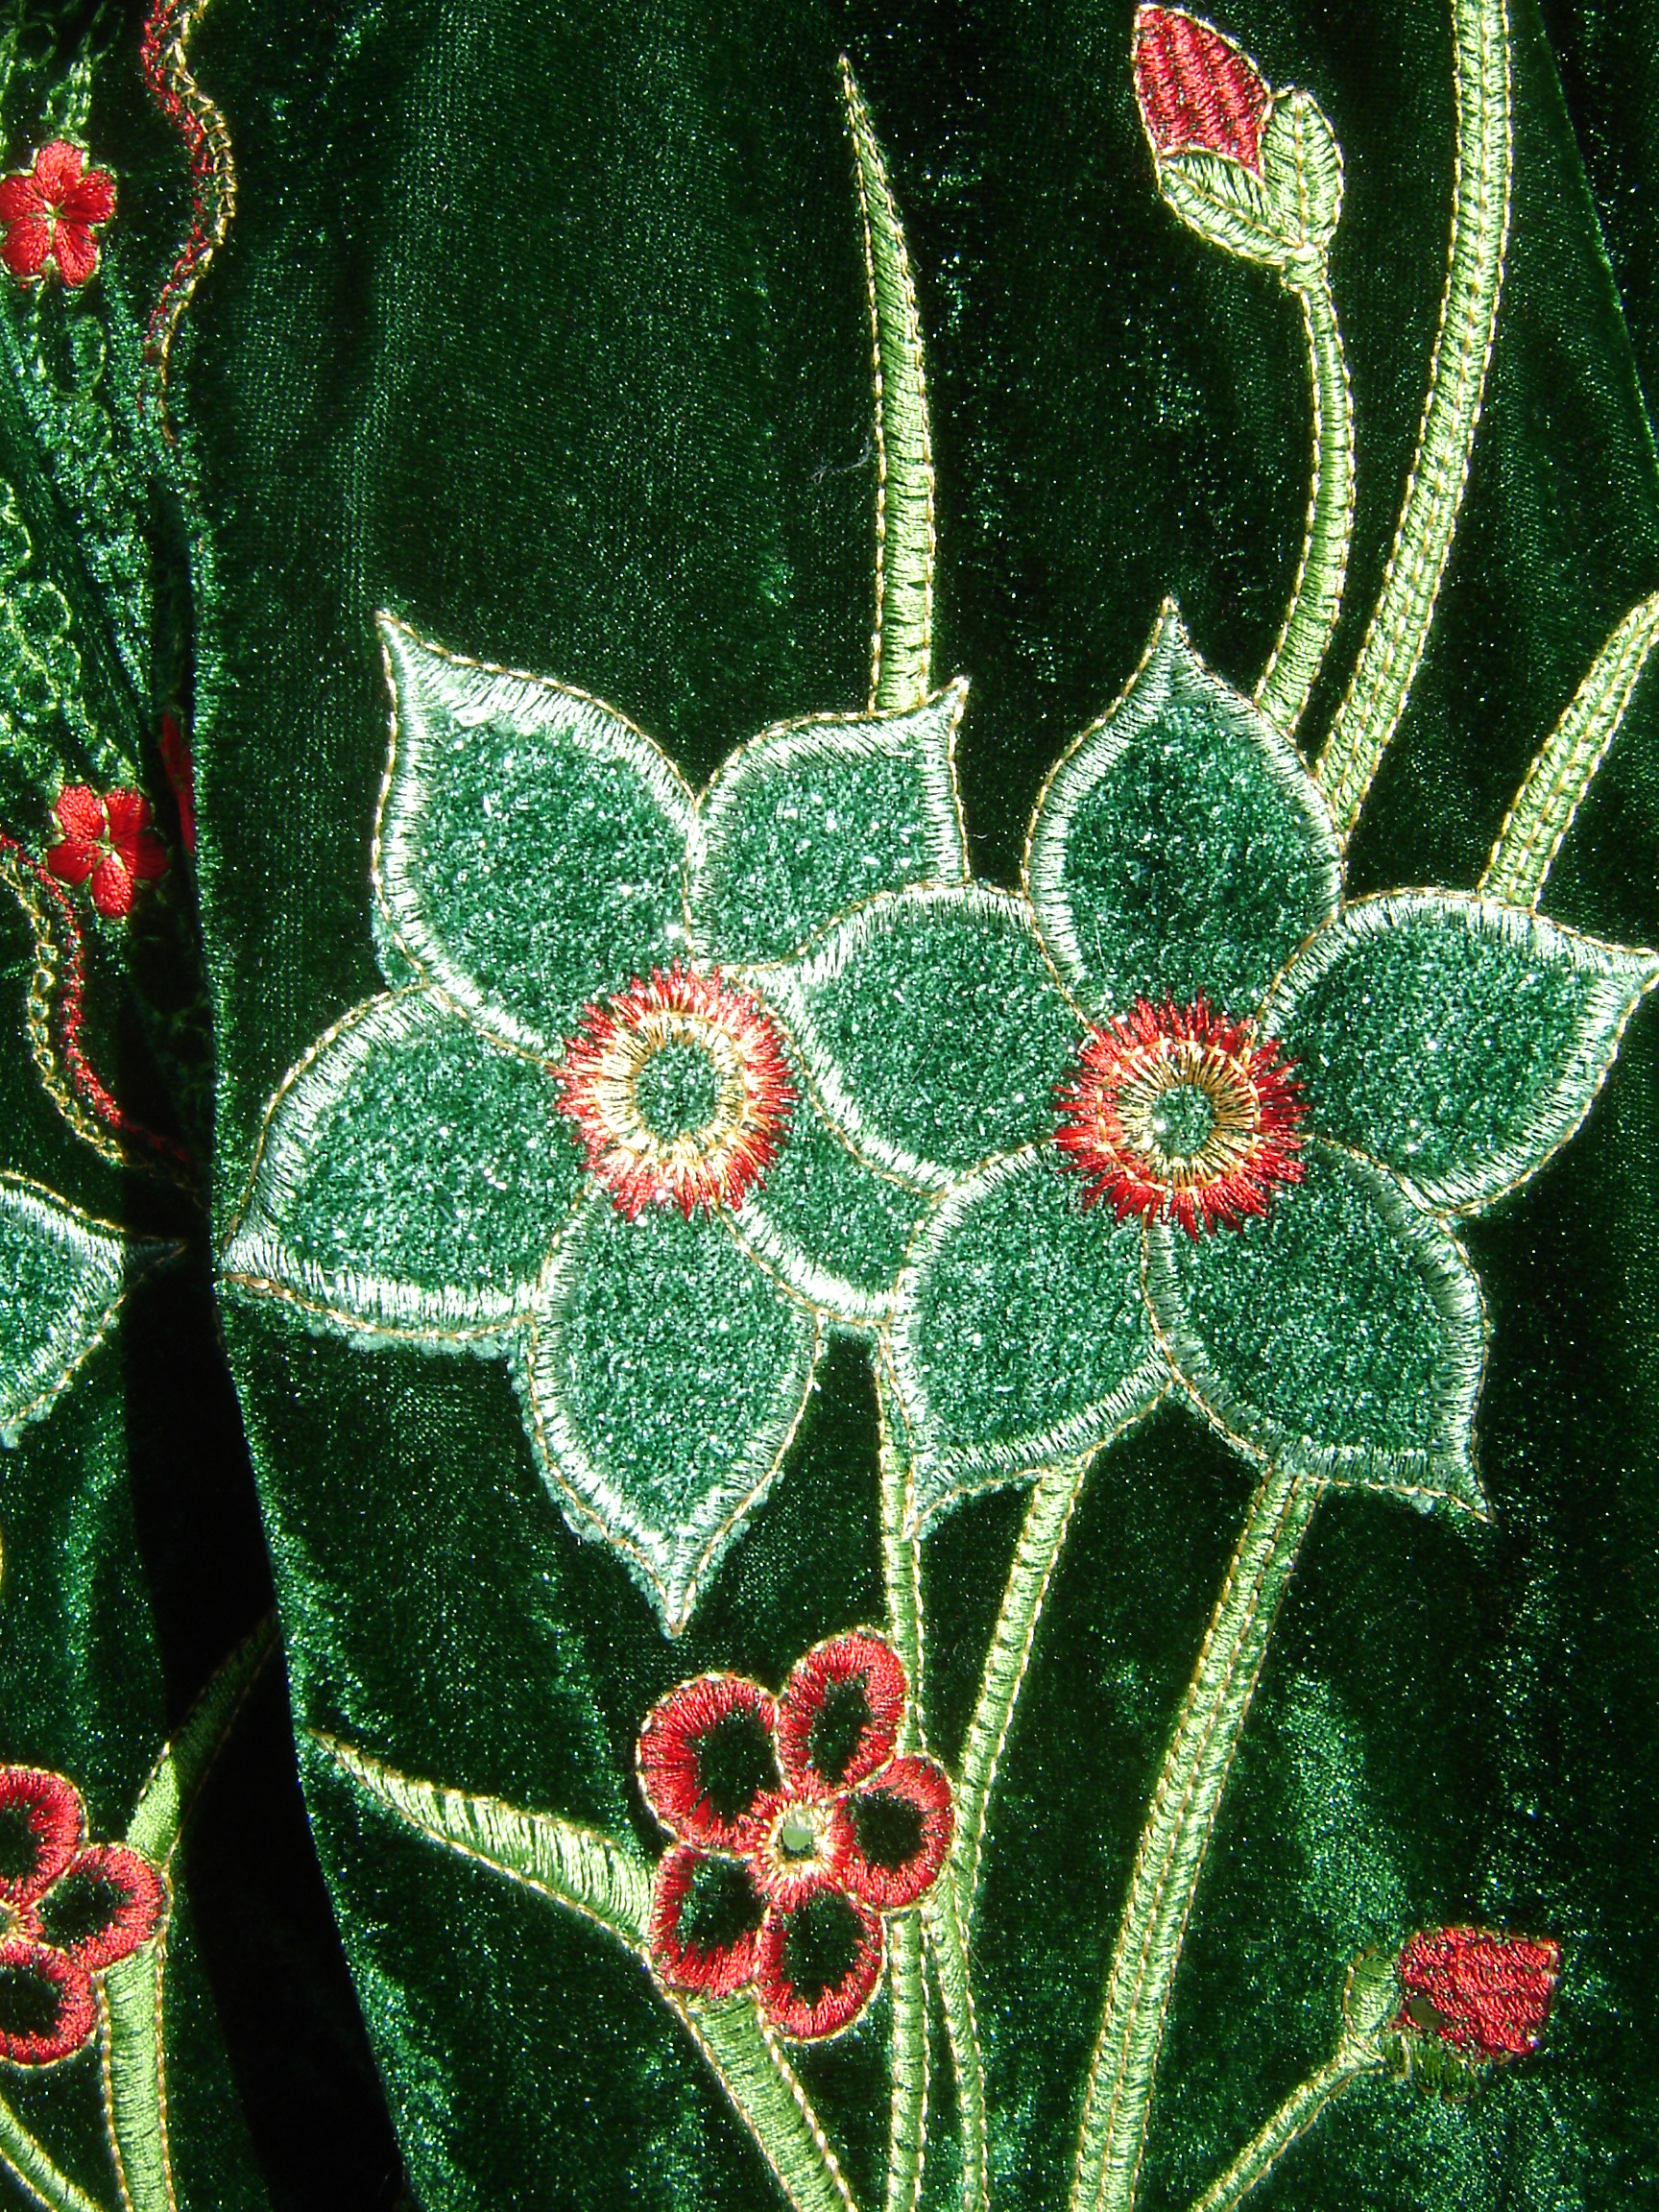 Green embroidered velvet flowered top, showing detail of embroidery